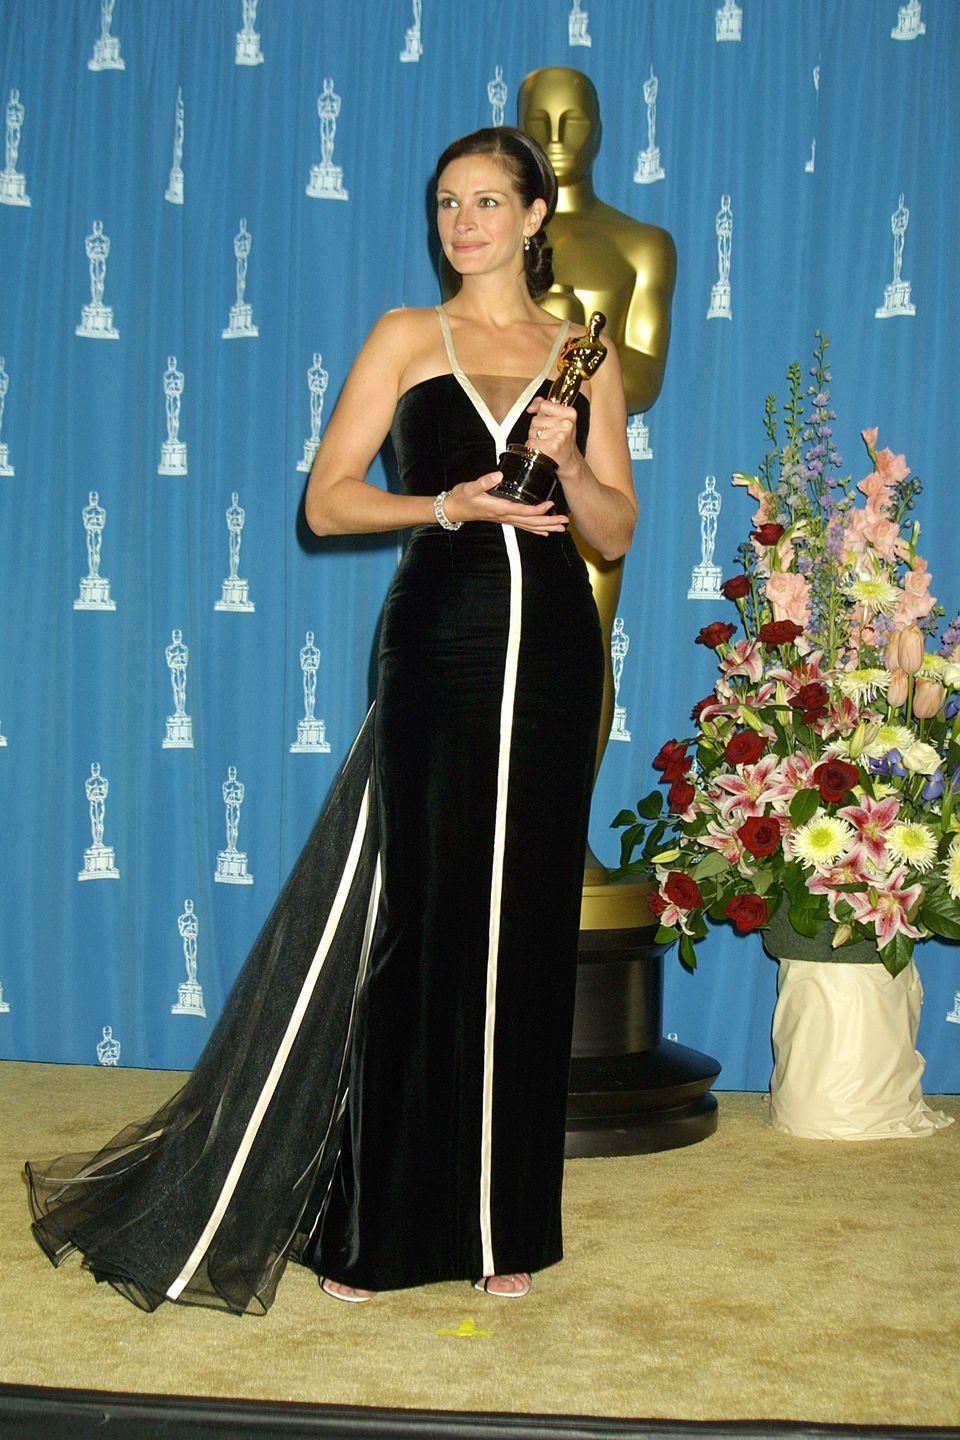 <p>The actress was all elegance in this vintage black-and-white Valentino dress and pinned-up 'do. Her stellar performance in <em>Erin Brockovich </em>earned her the Best Actress award for the night. </p>